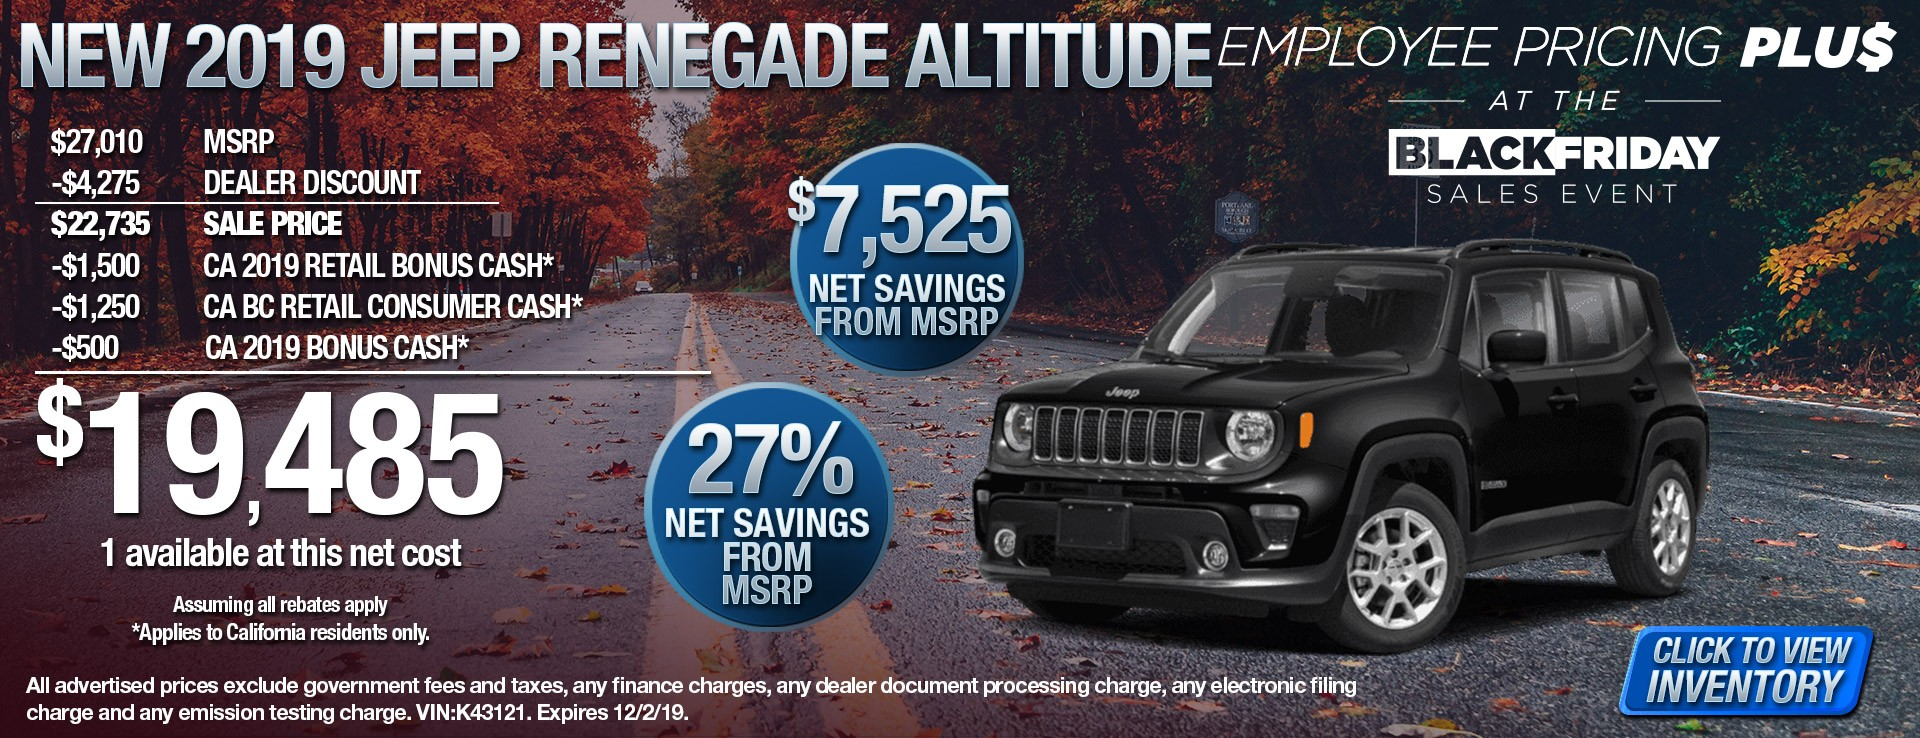 2019 Jeep Renegade Altitude - $7525 Net Savings from MSRP